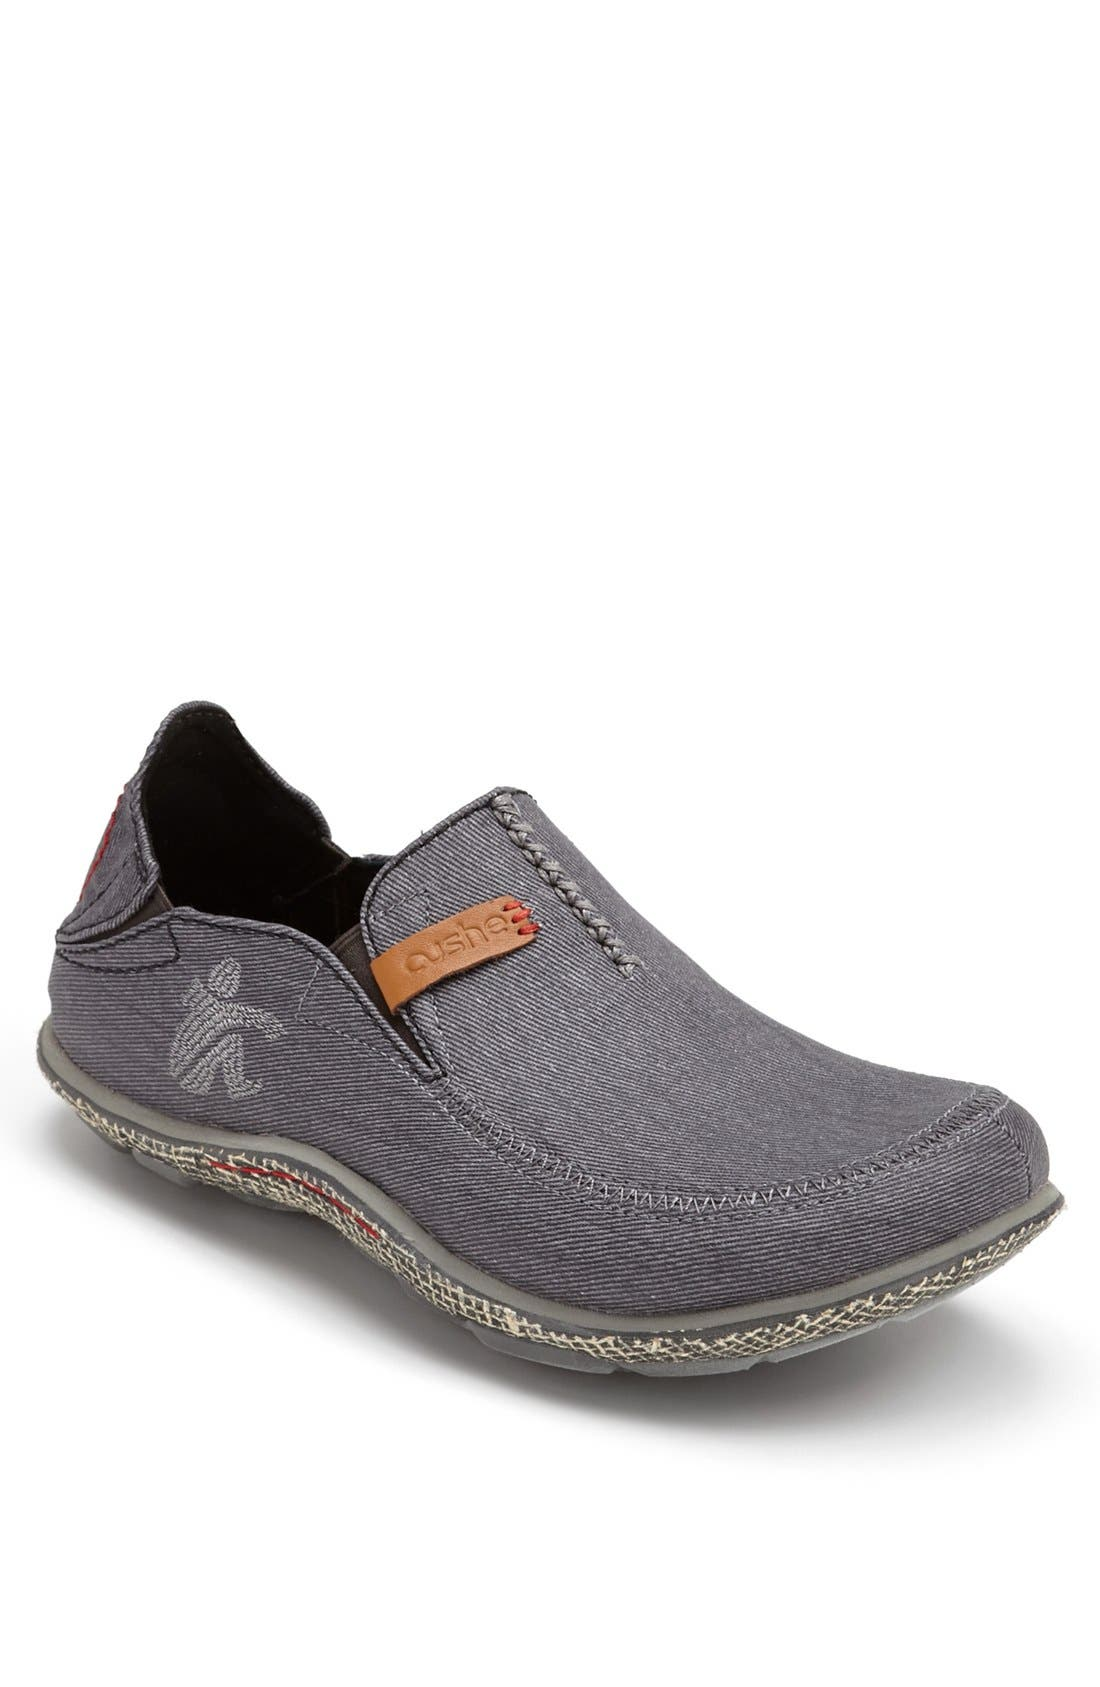 Main Image - Cushe 'Surf' Slip-On